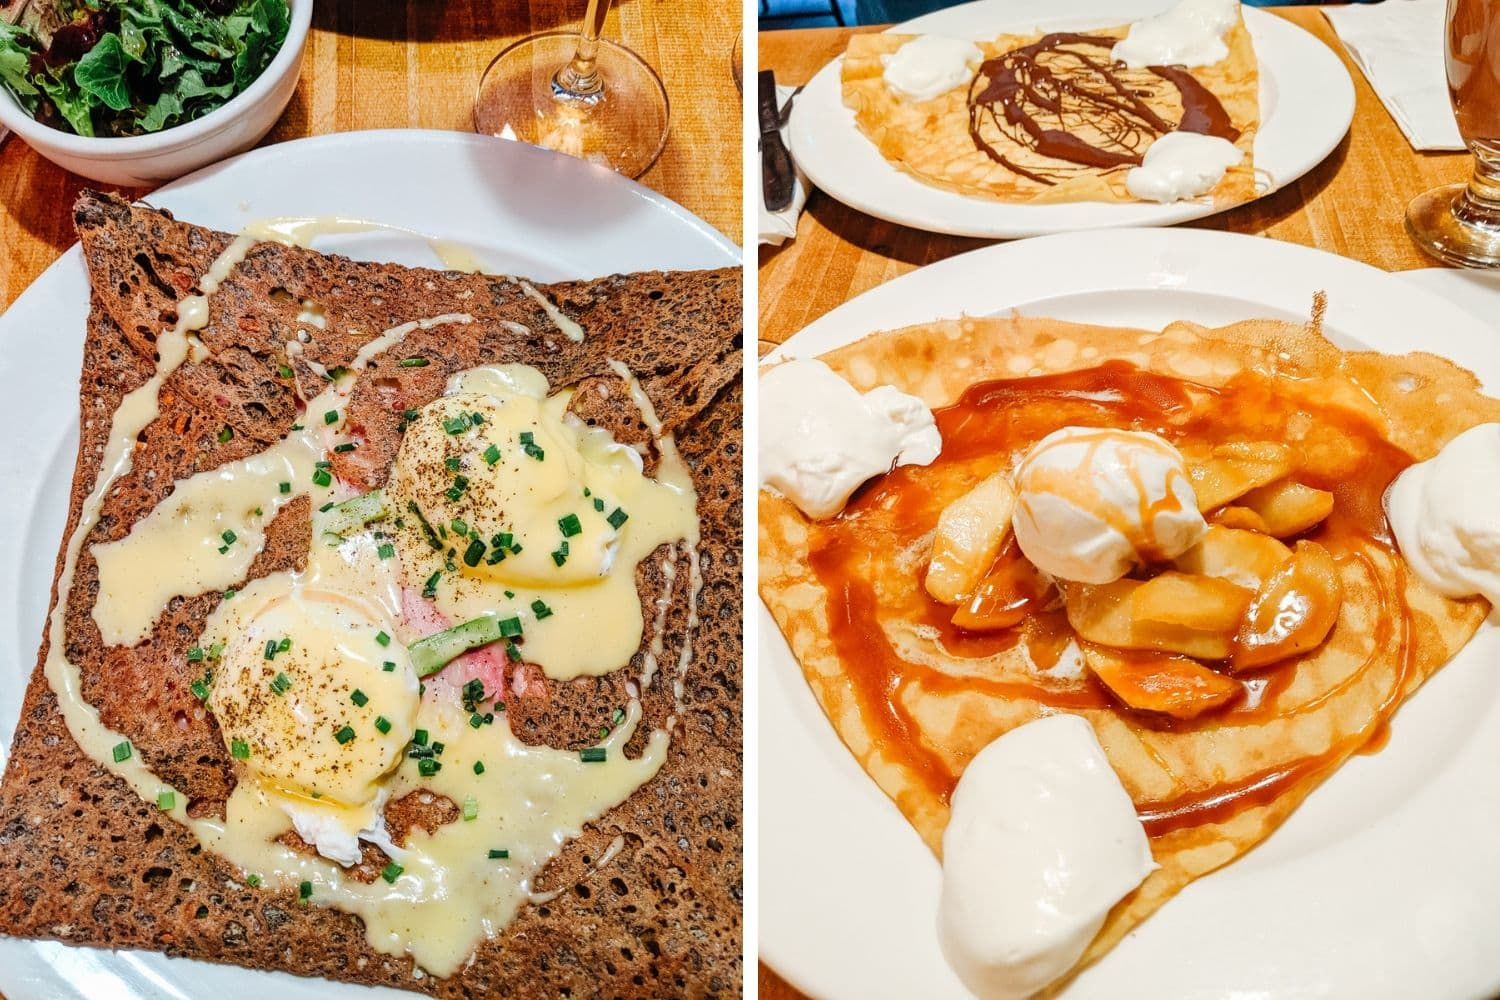 Savoury and sweet crepes at Le Billig in Quebec City